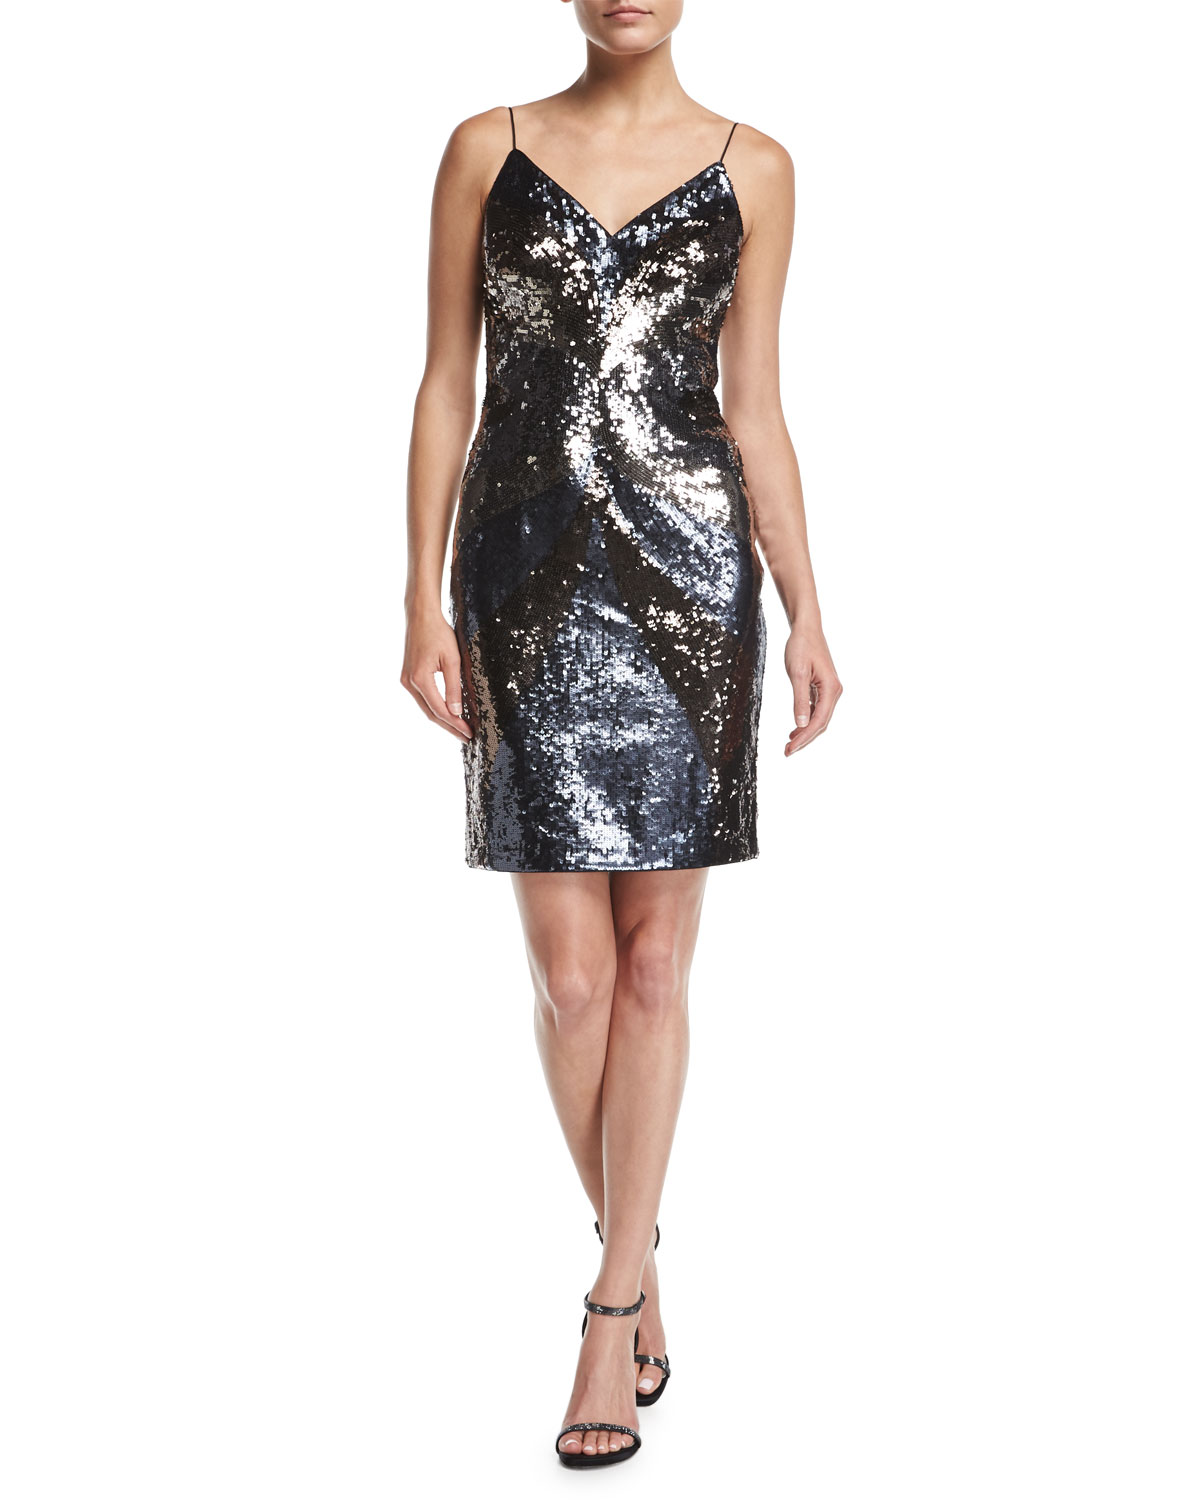 V-Neck Sleeveless Sequin Short Cocktail Dress